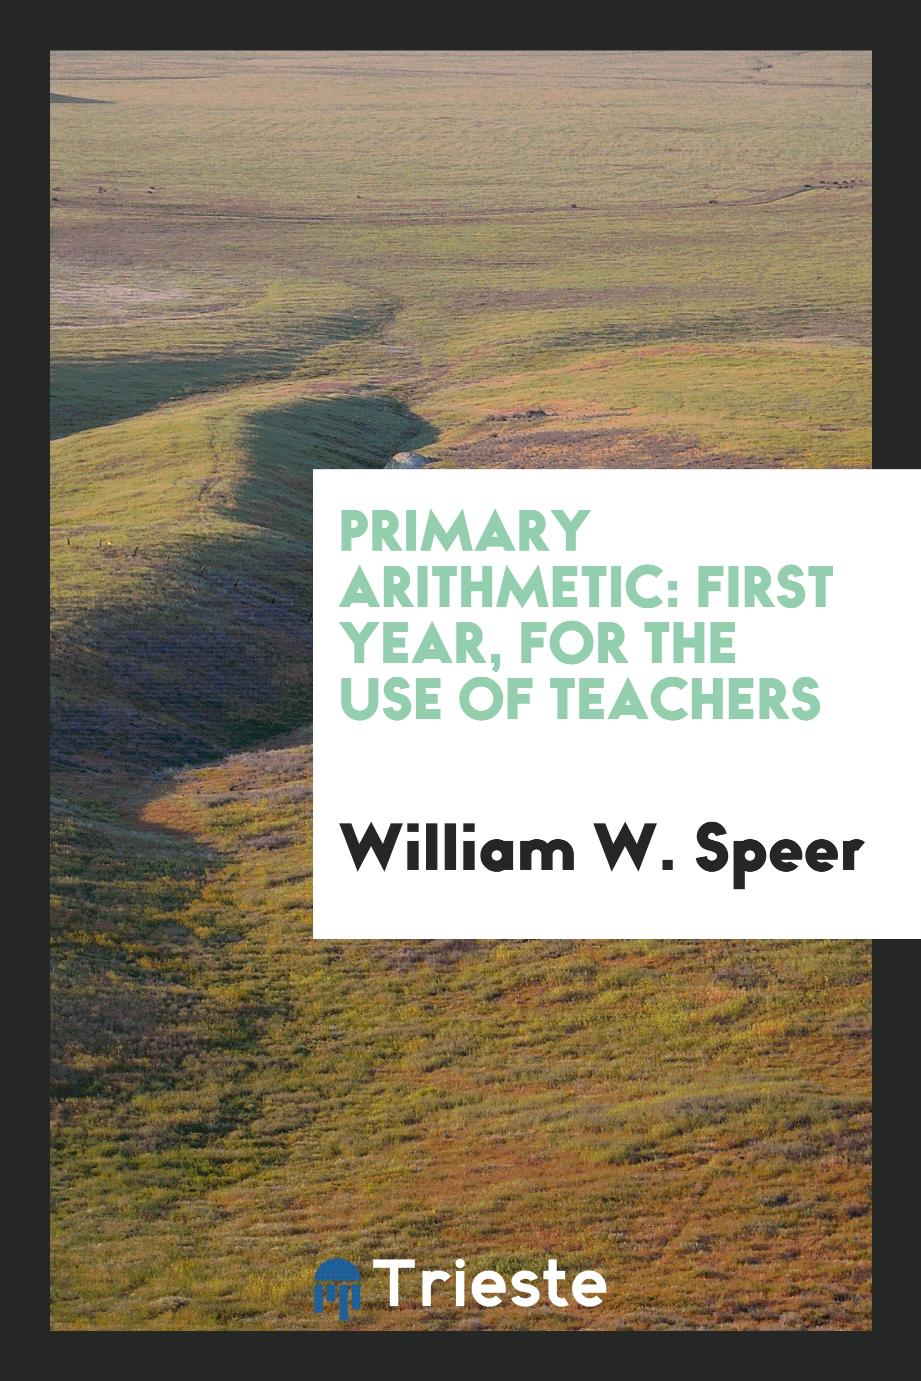 Primary Arithmetic: First Year, for the Use of Teachers